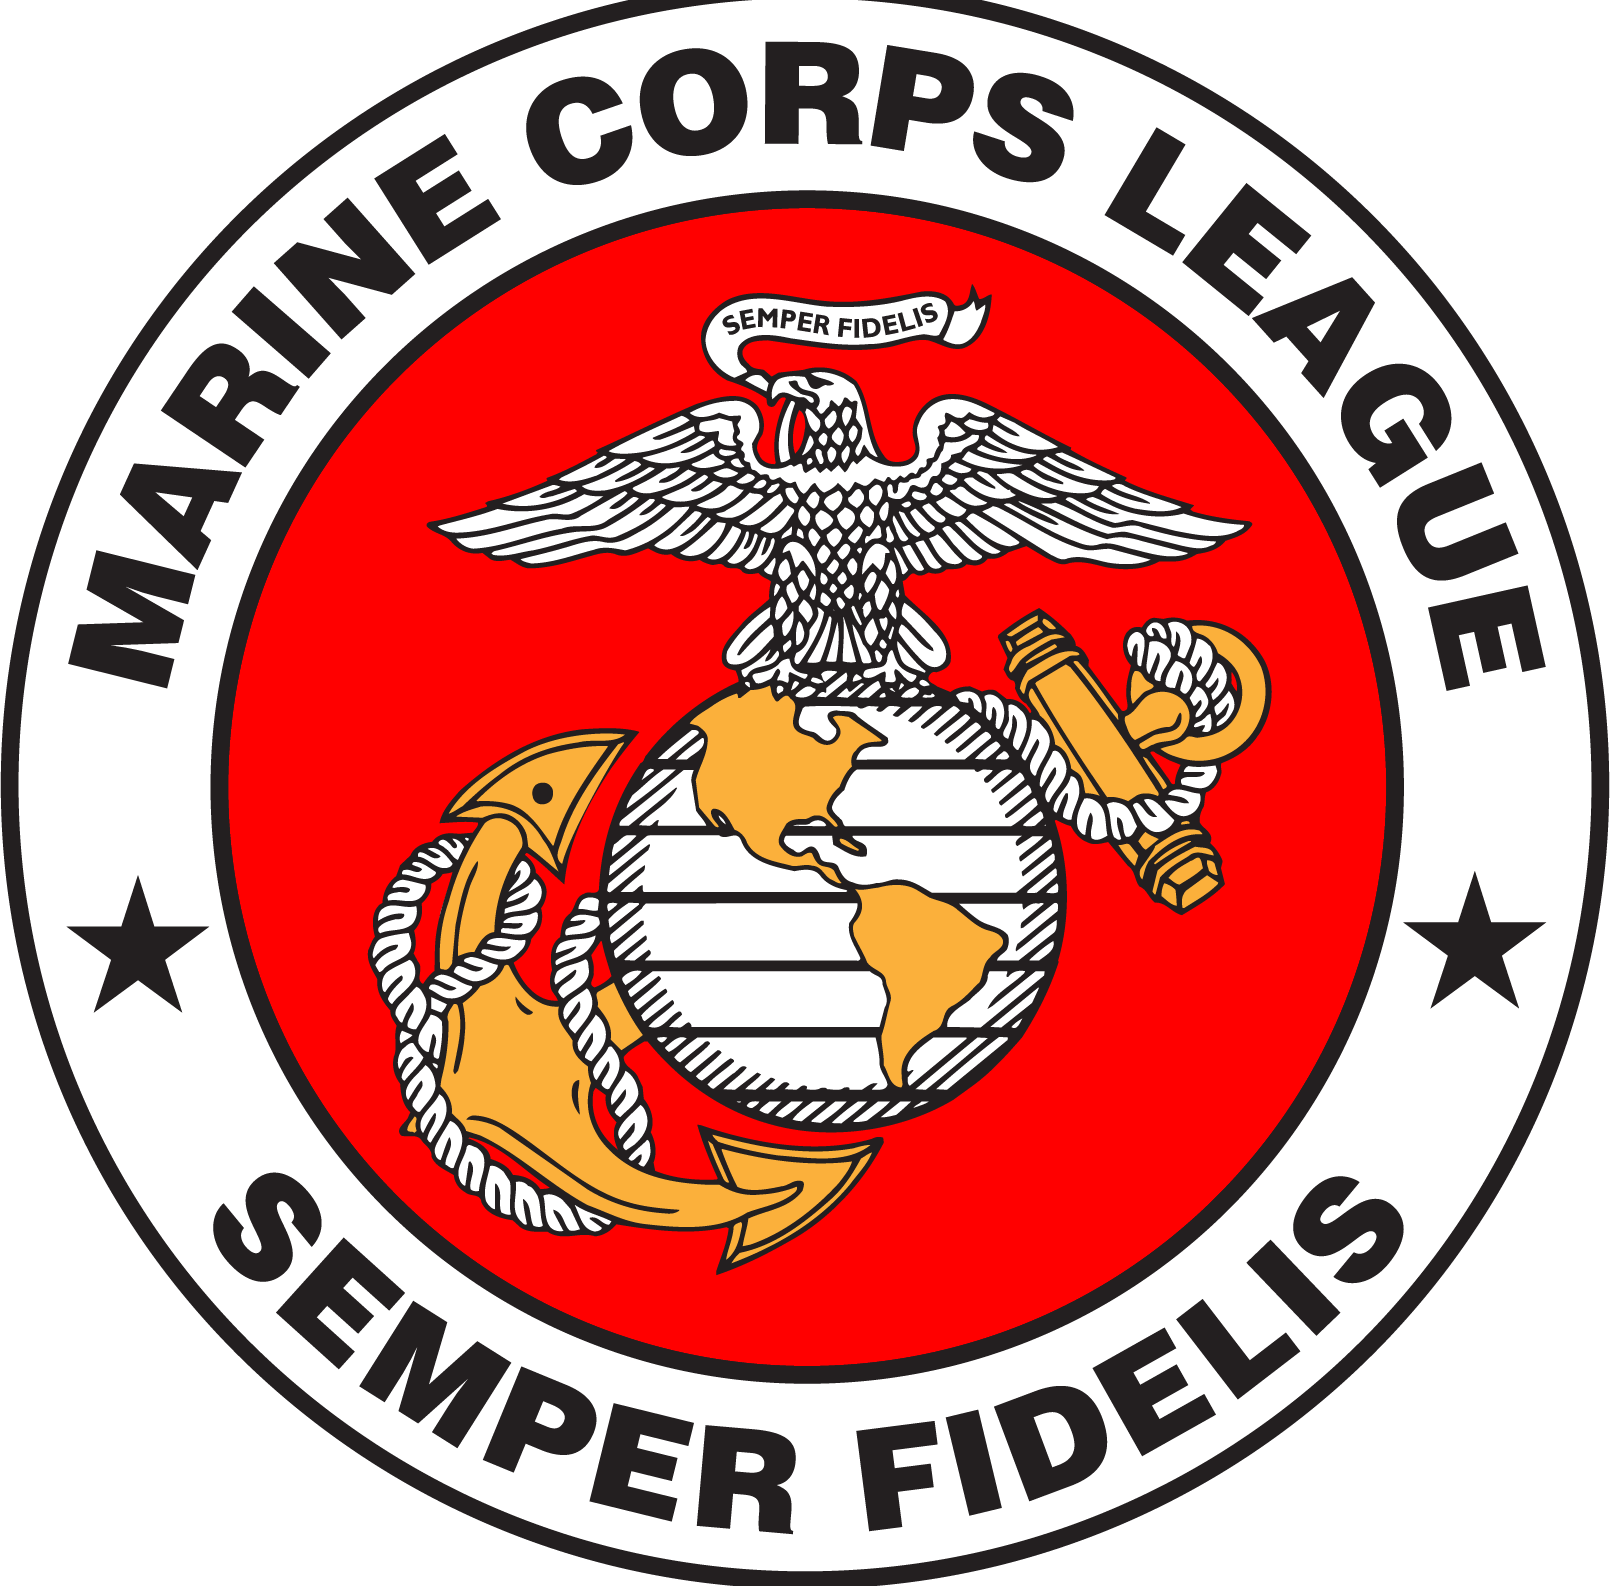 Marine Corps League Northwest Detachment 162